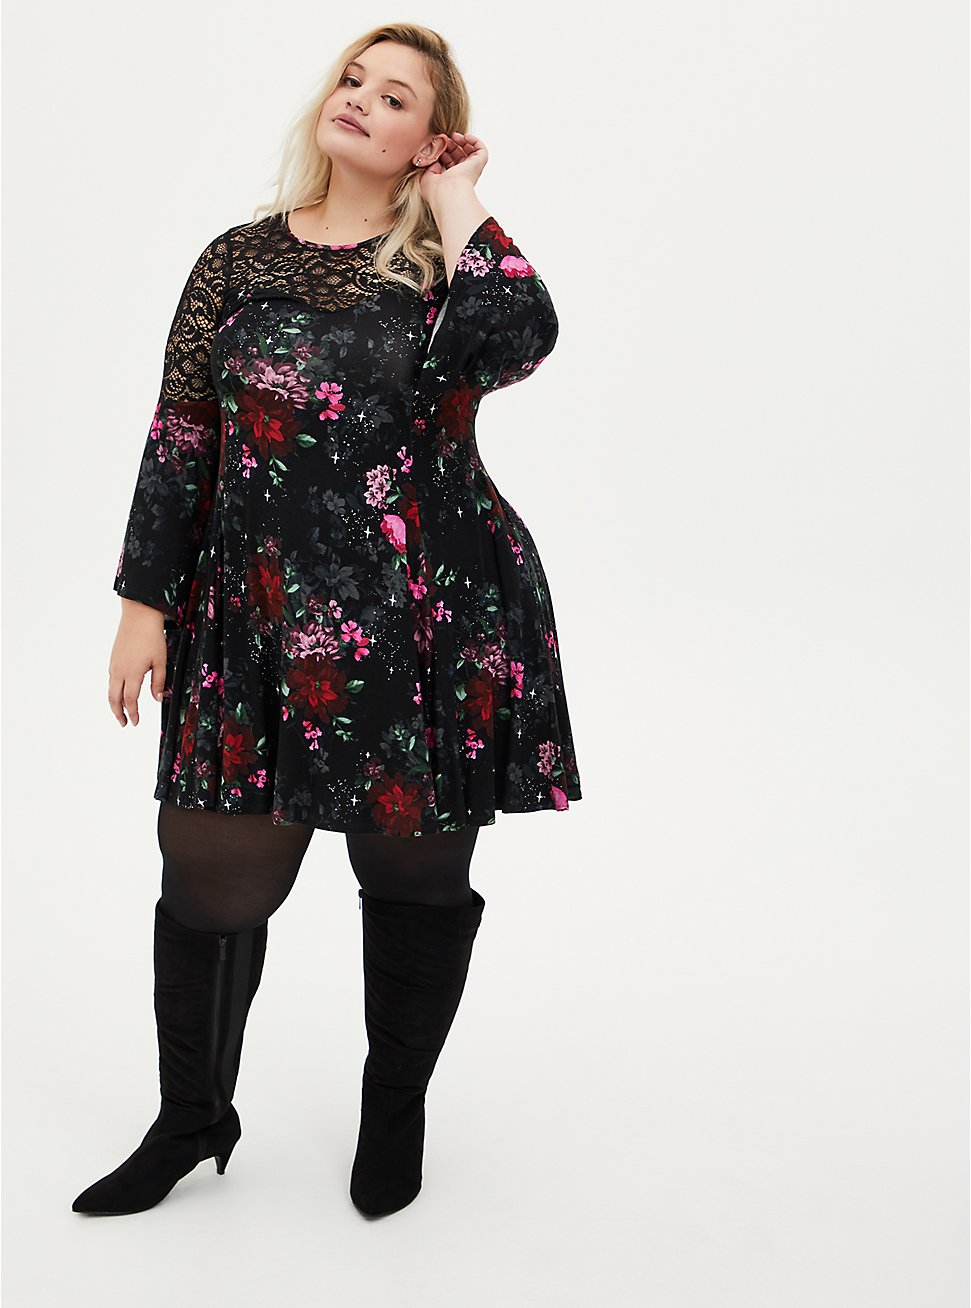 Super Soft Black Floral Lace Bell Sleeve Dress, FLORAL - BLACK, hi-res